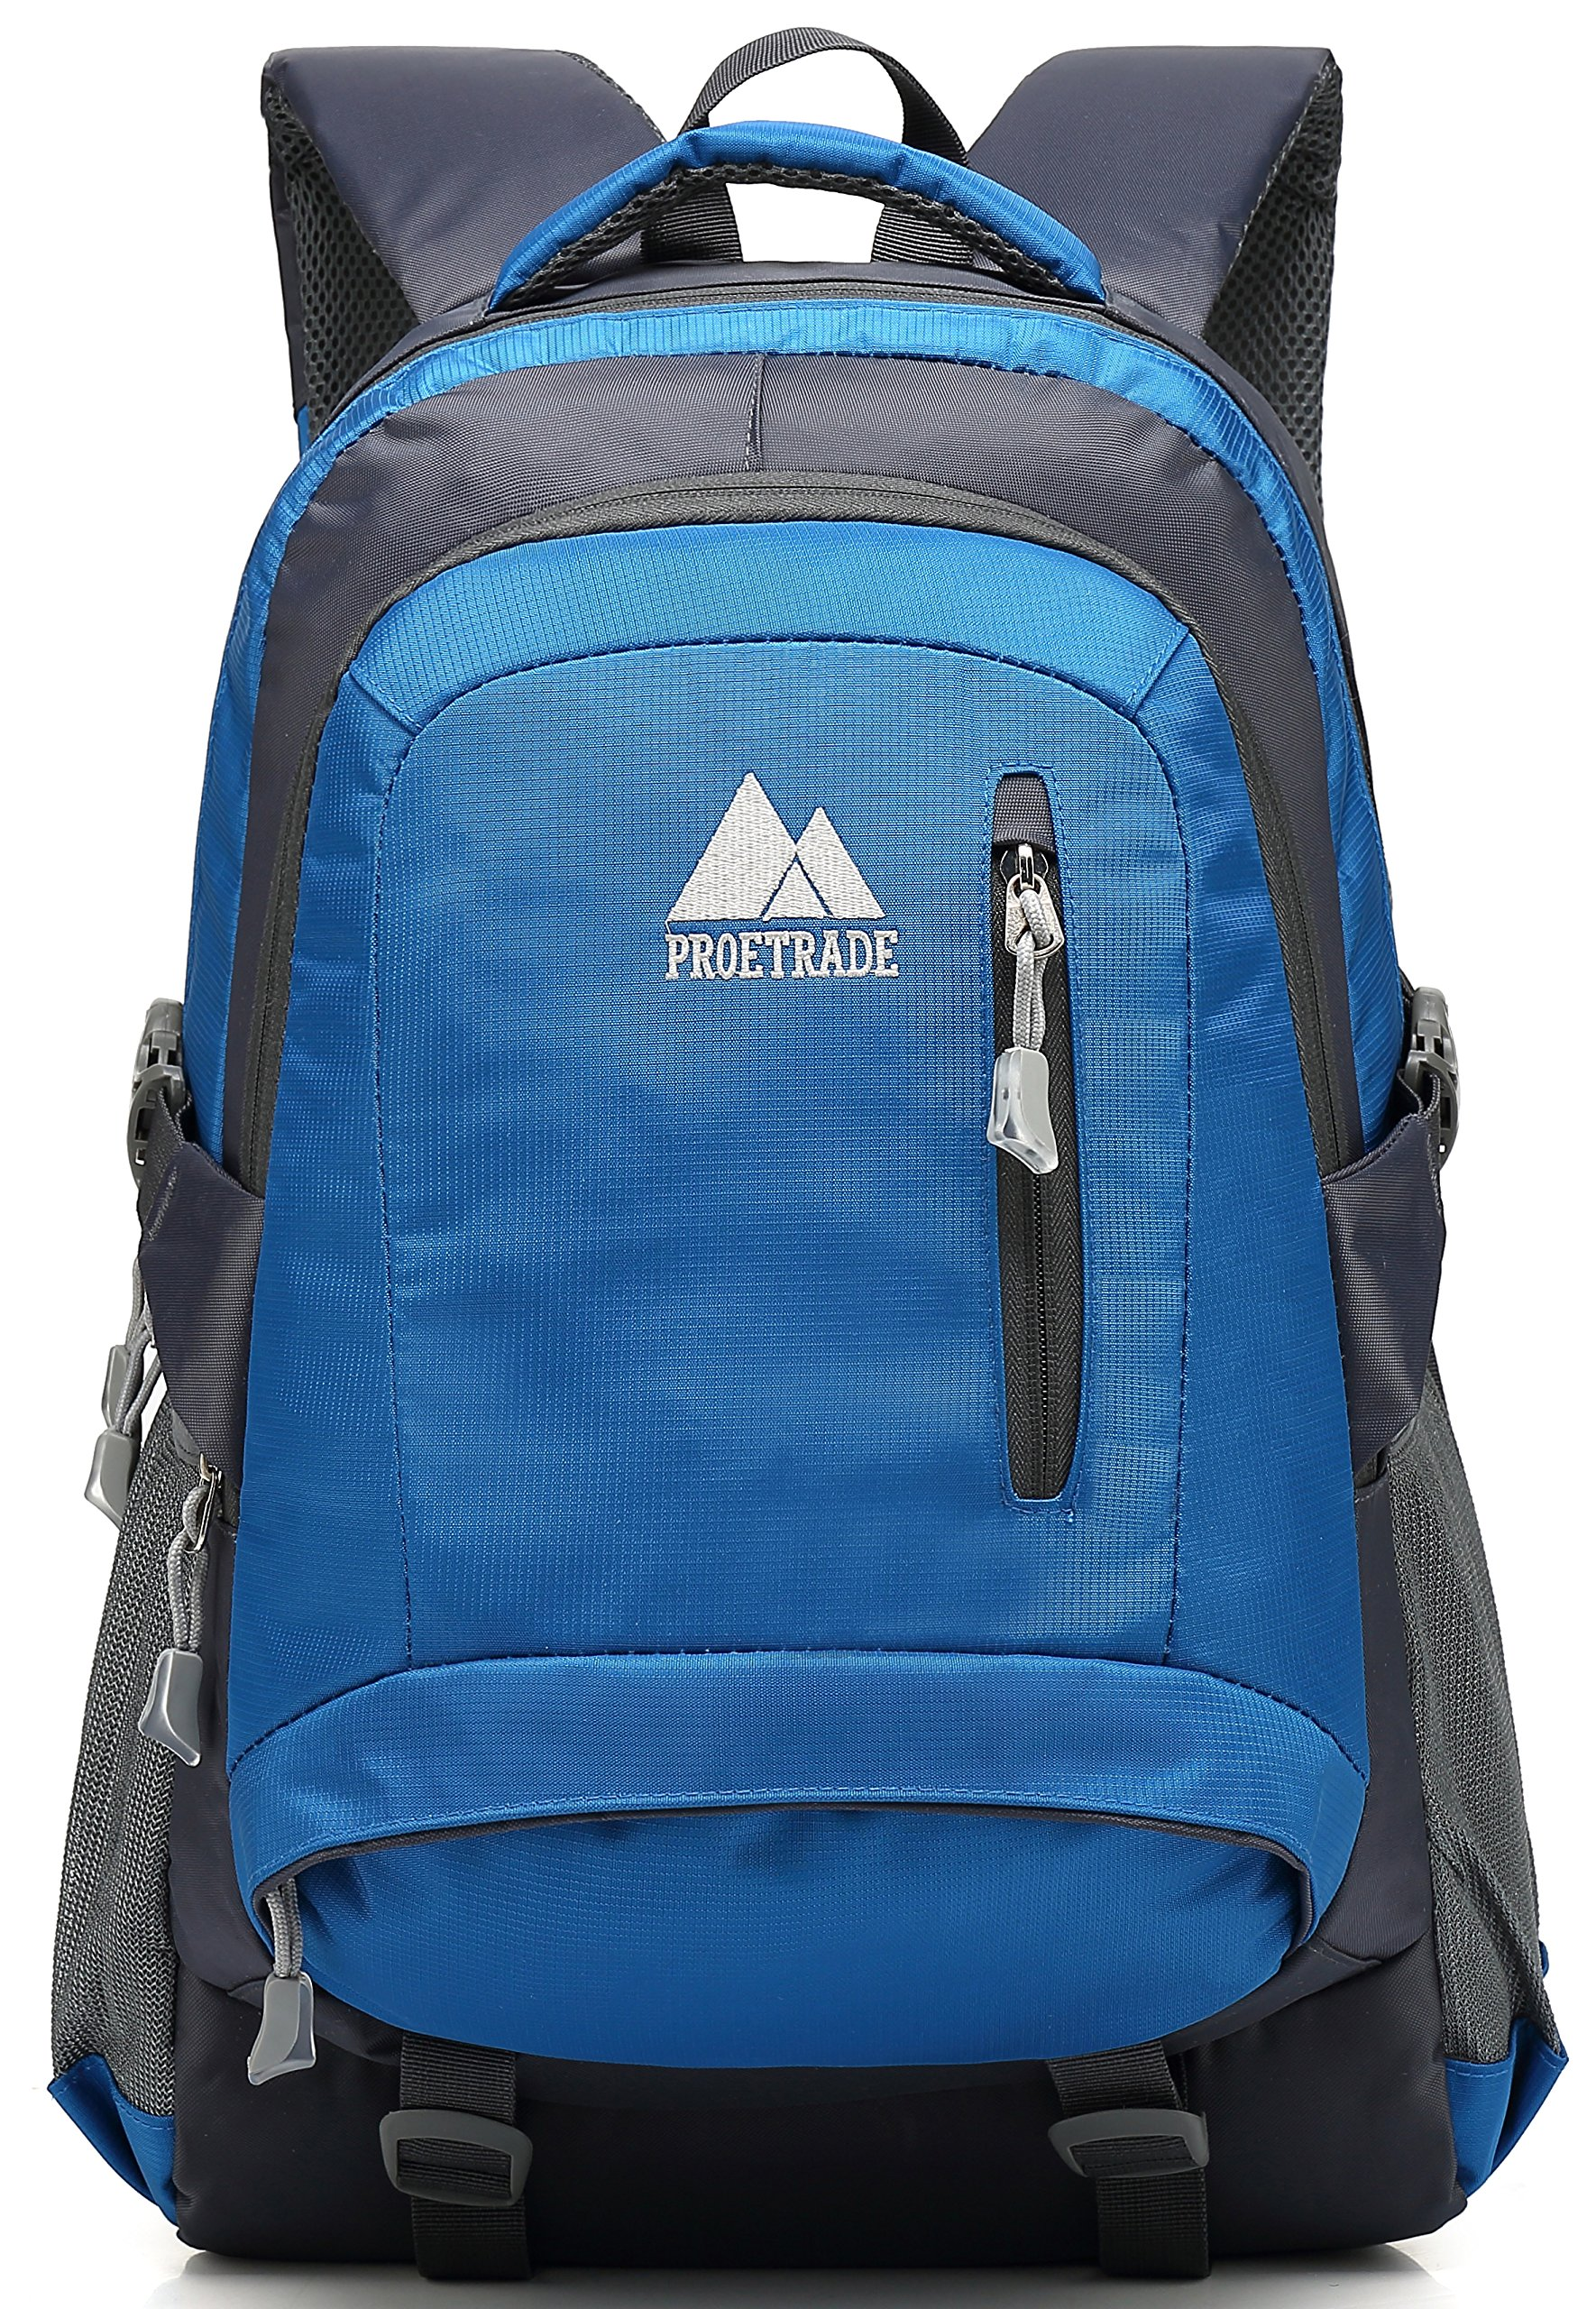 School Backpack BookBag For College Travel Hiking Fit Laptop Up to 15.6 Inch Water Resistant (Blue)